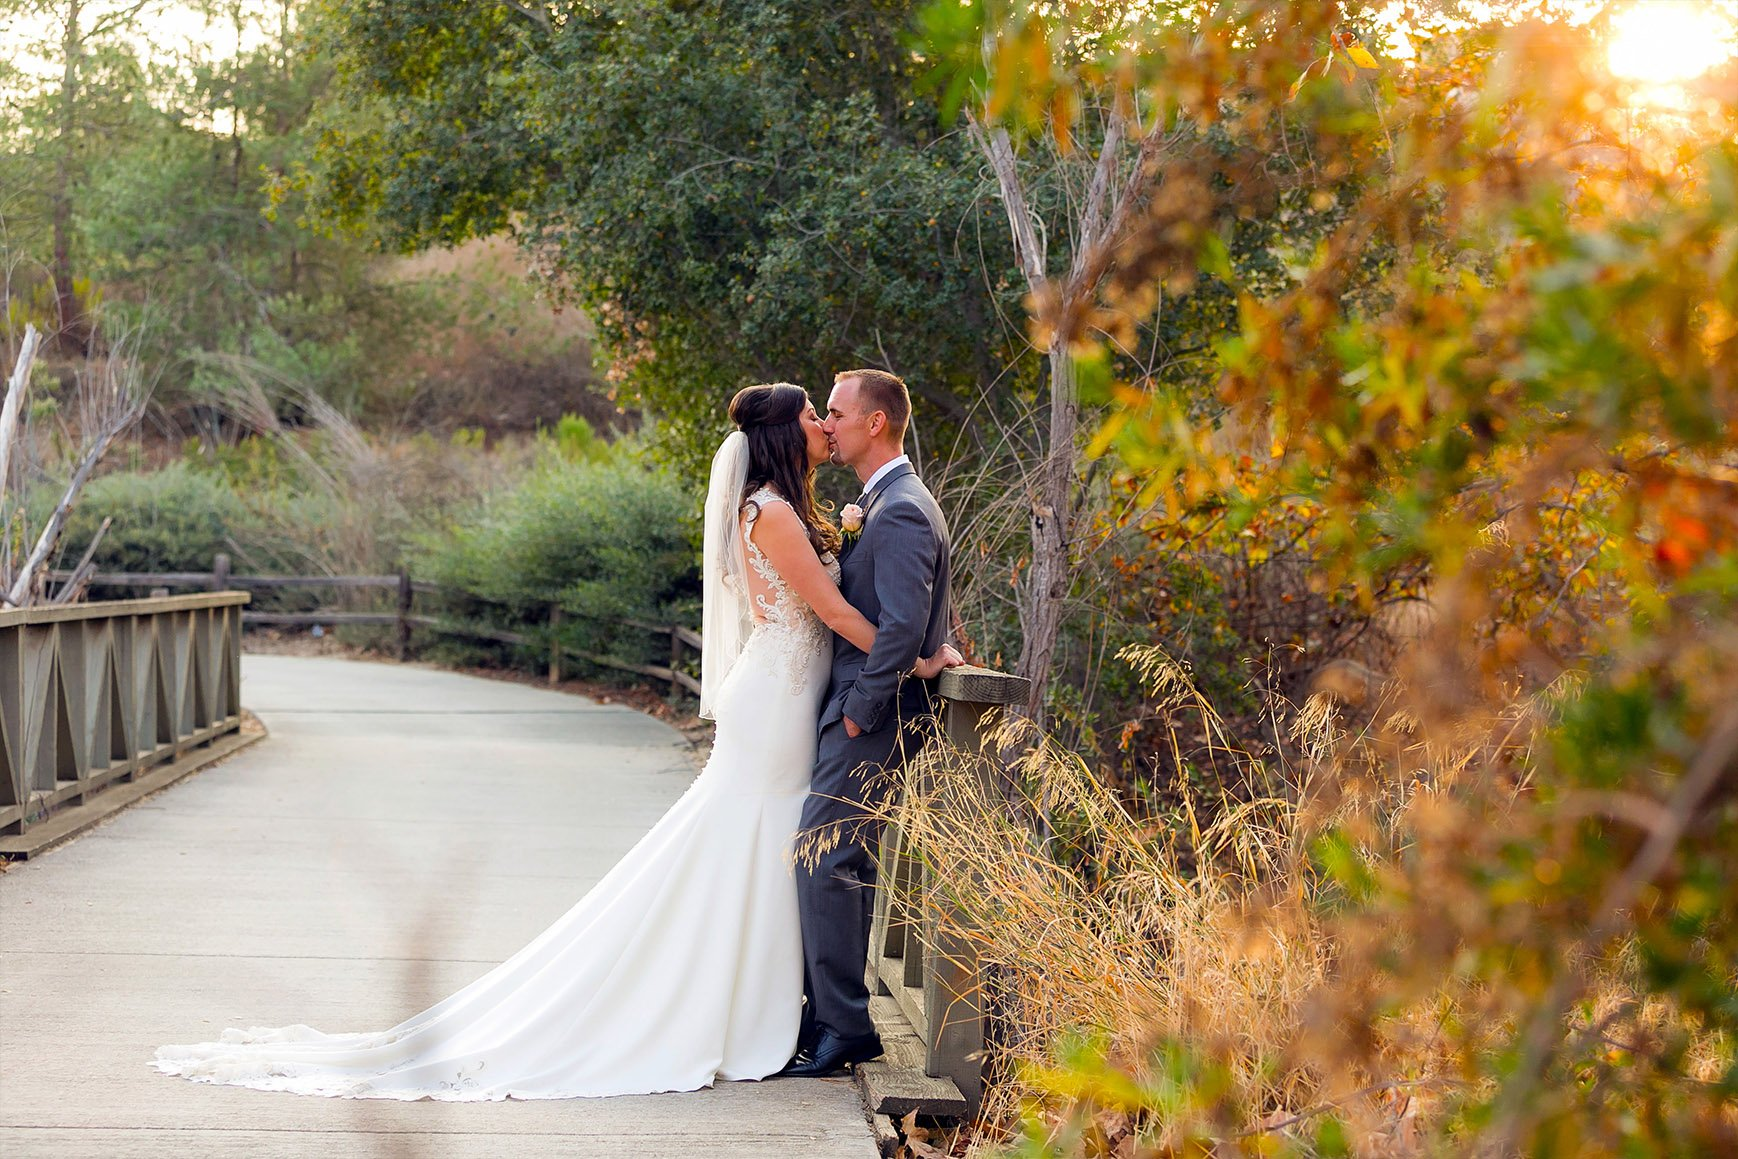 Couple at Sunset - Fallbrook - Fallbrook, California - San Diego County - Wedgewood Weddings